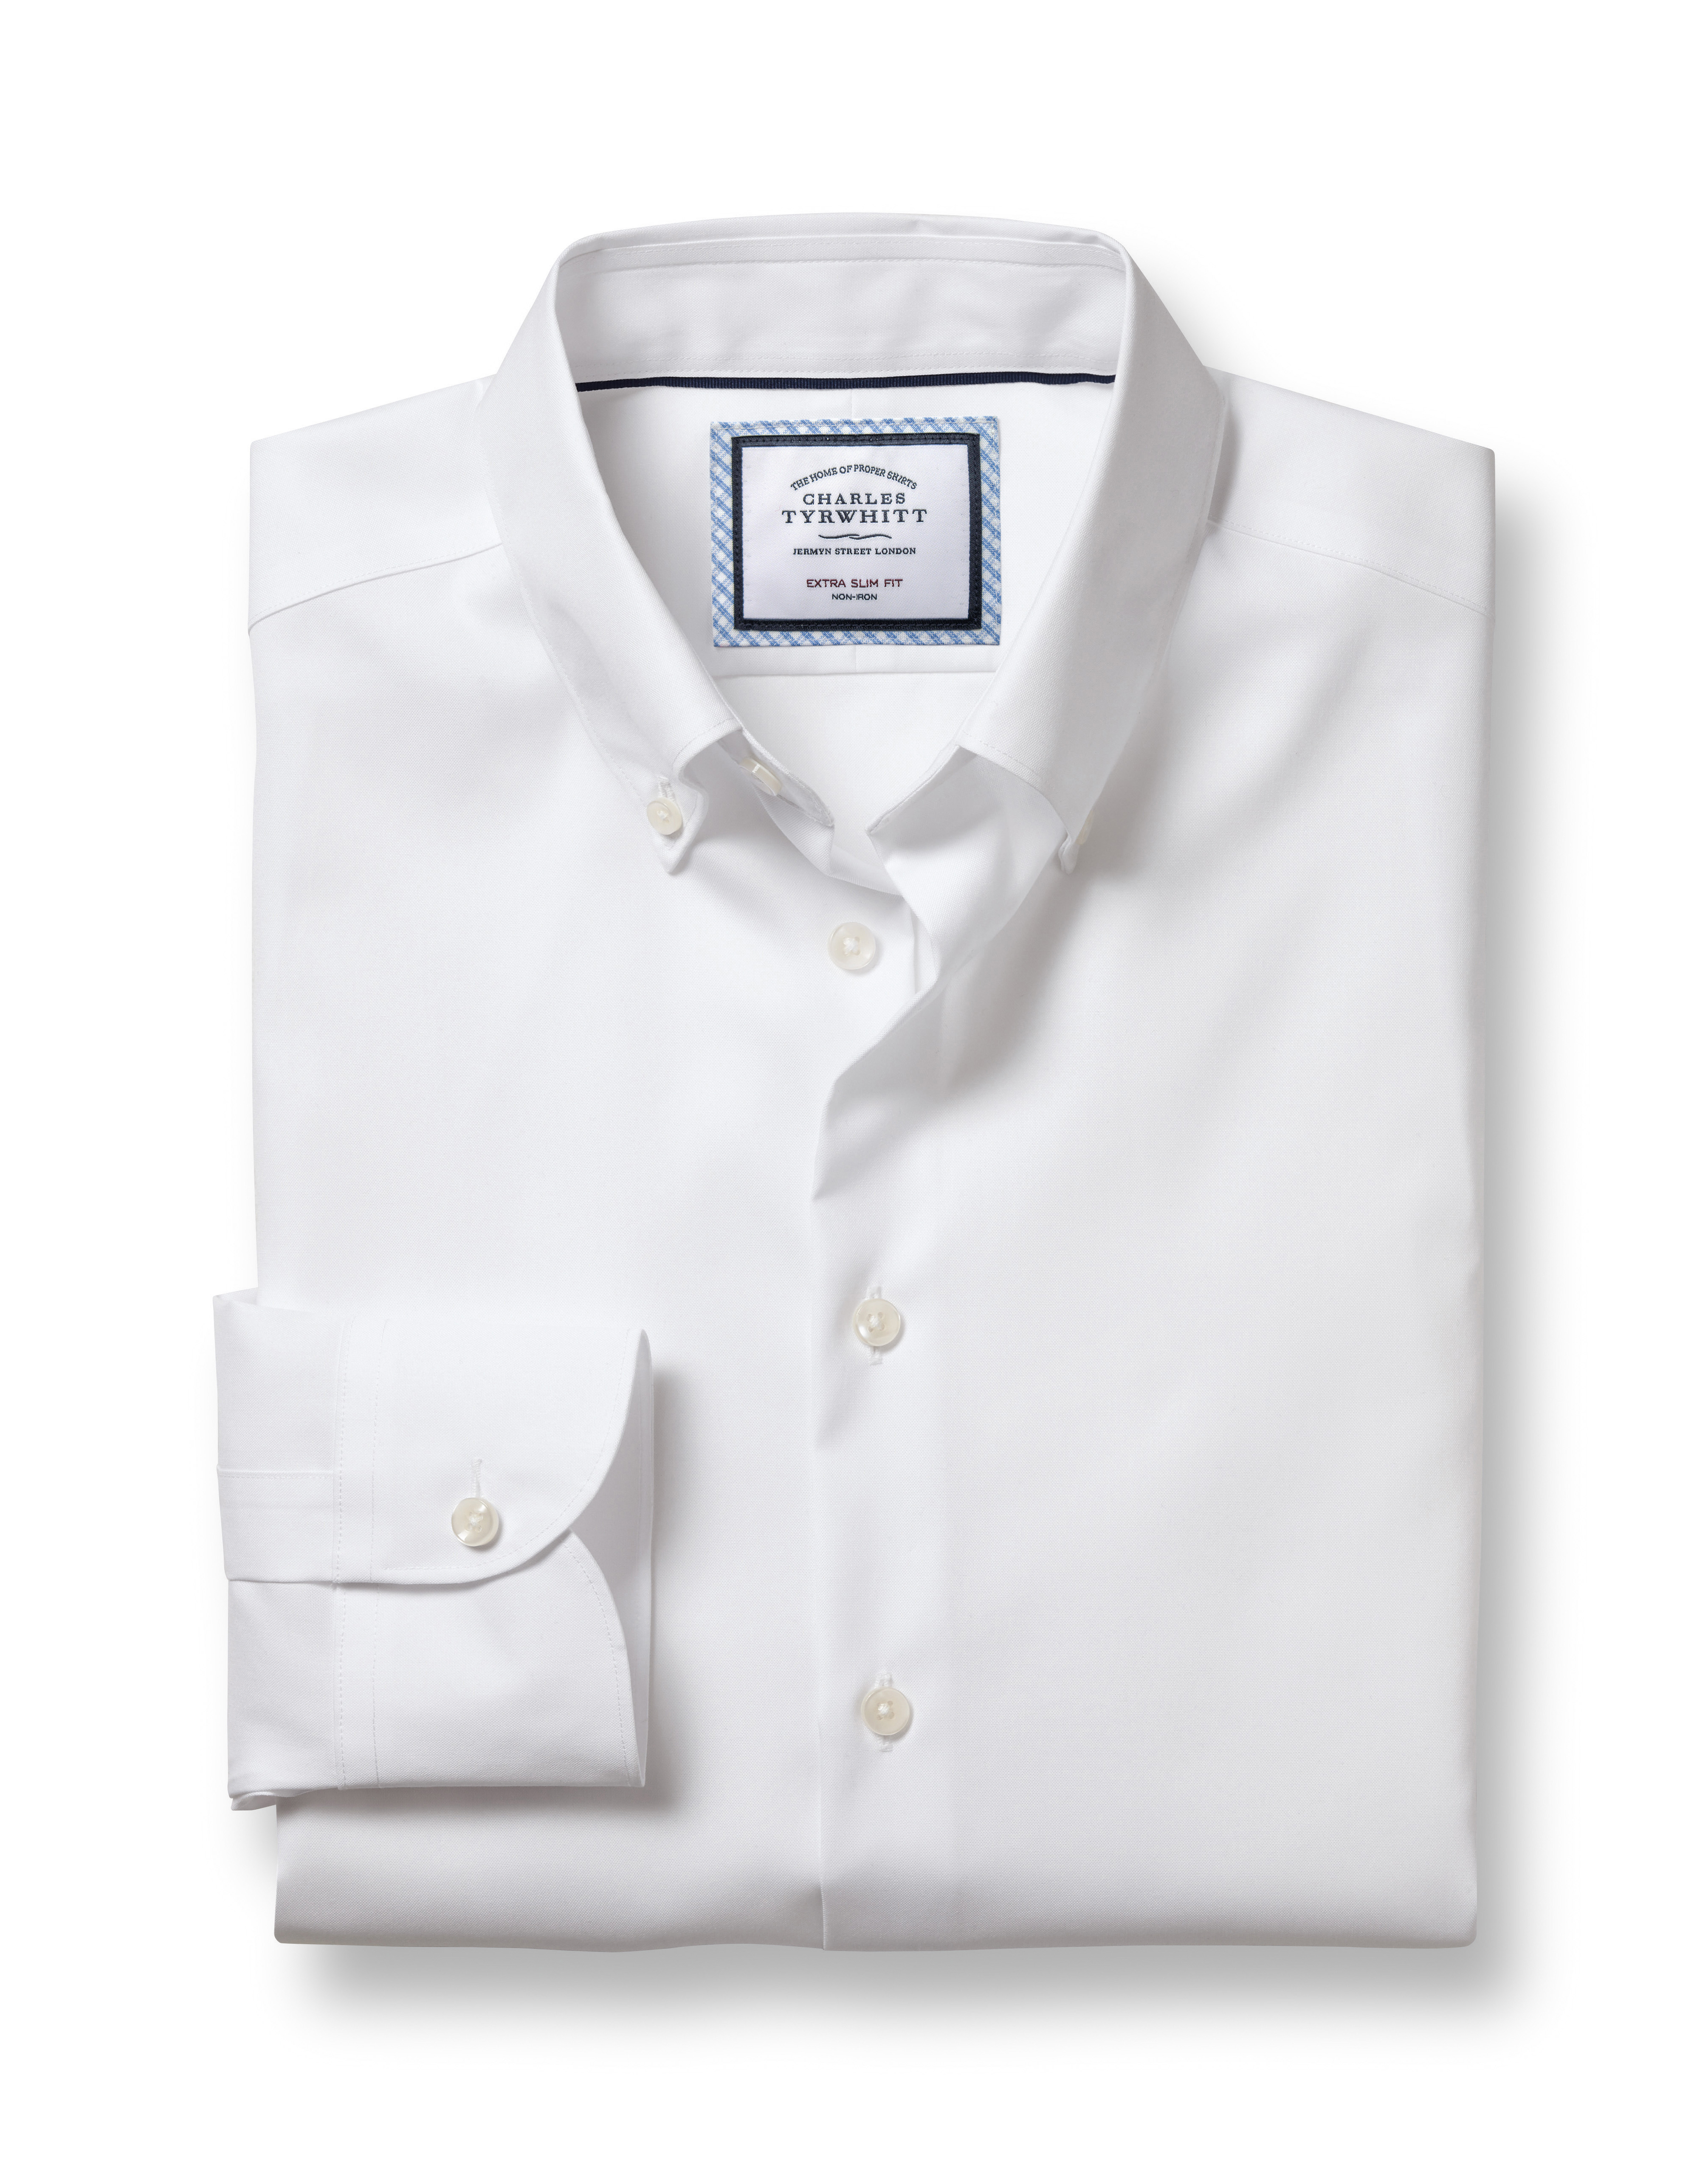 Slim Fit Button-Down Business Casual Non-Iron White Cotton Formal Shirt Single Cuff Size 17.5/34 by